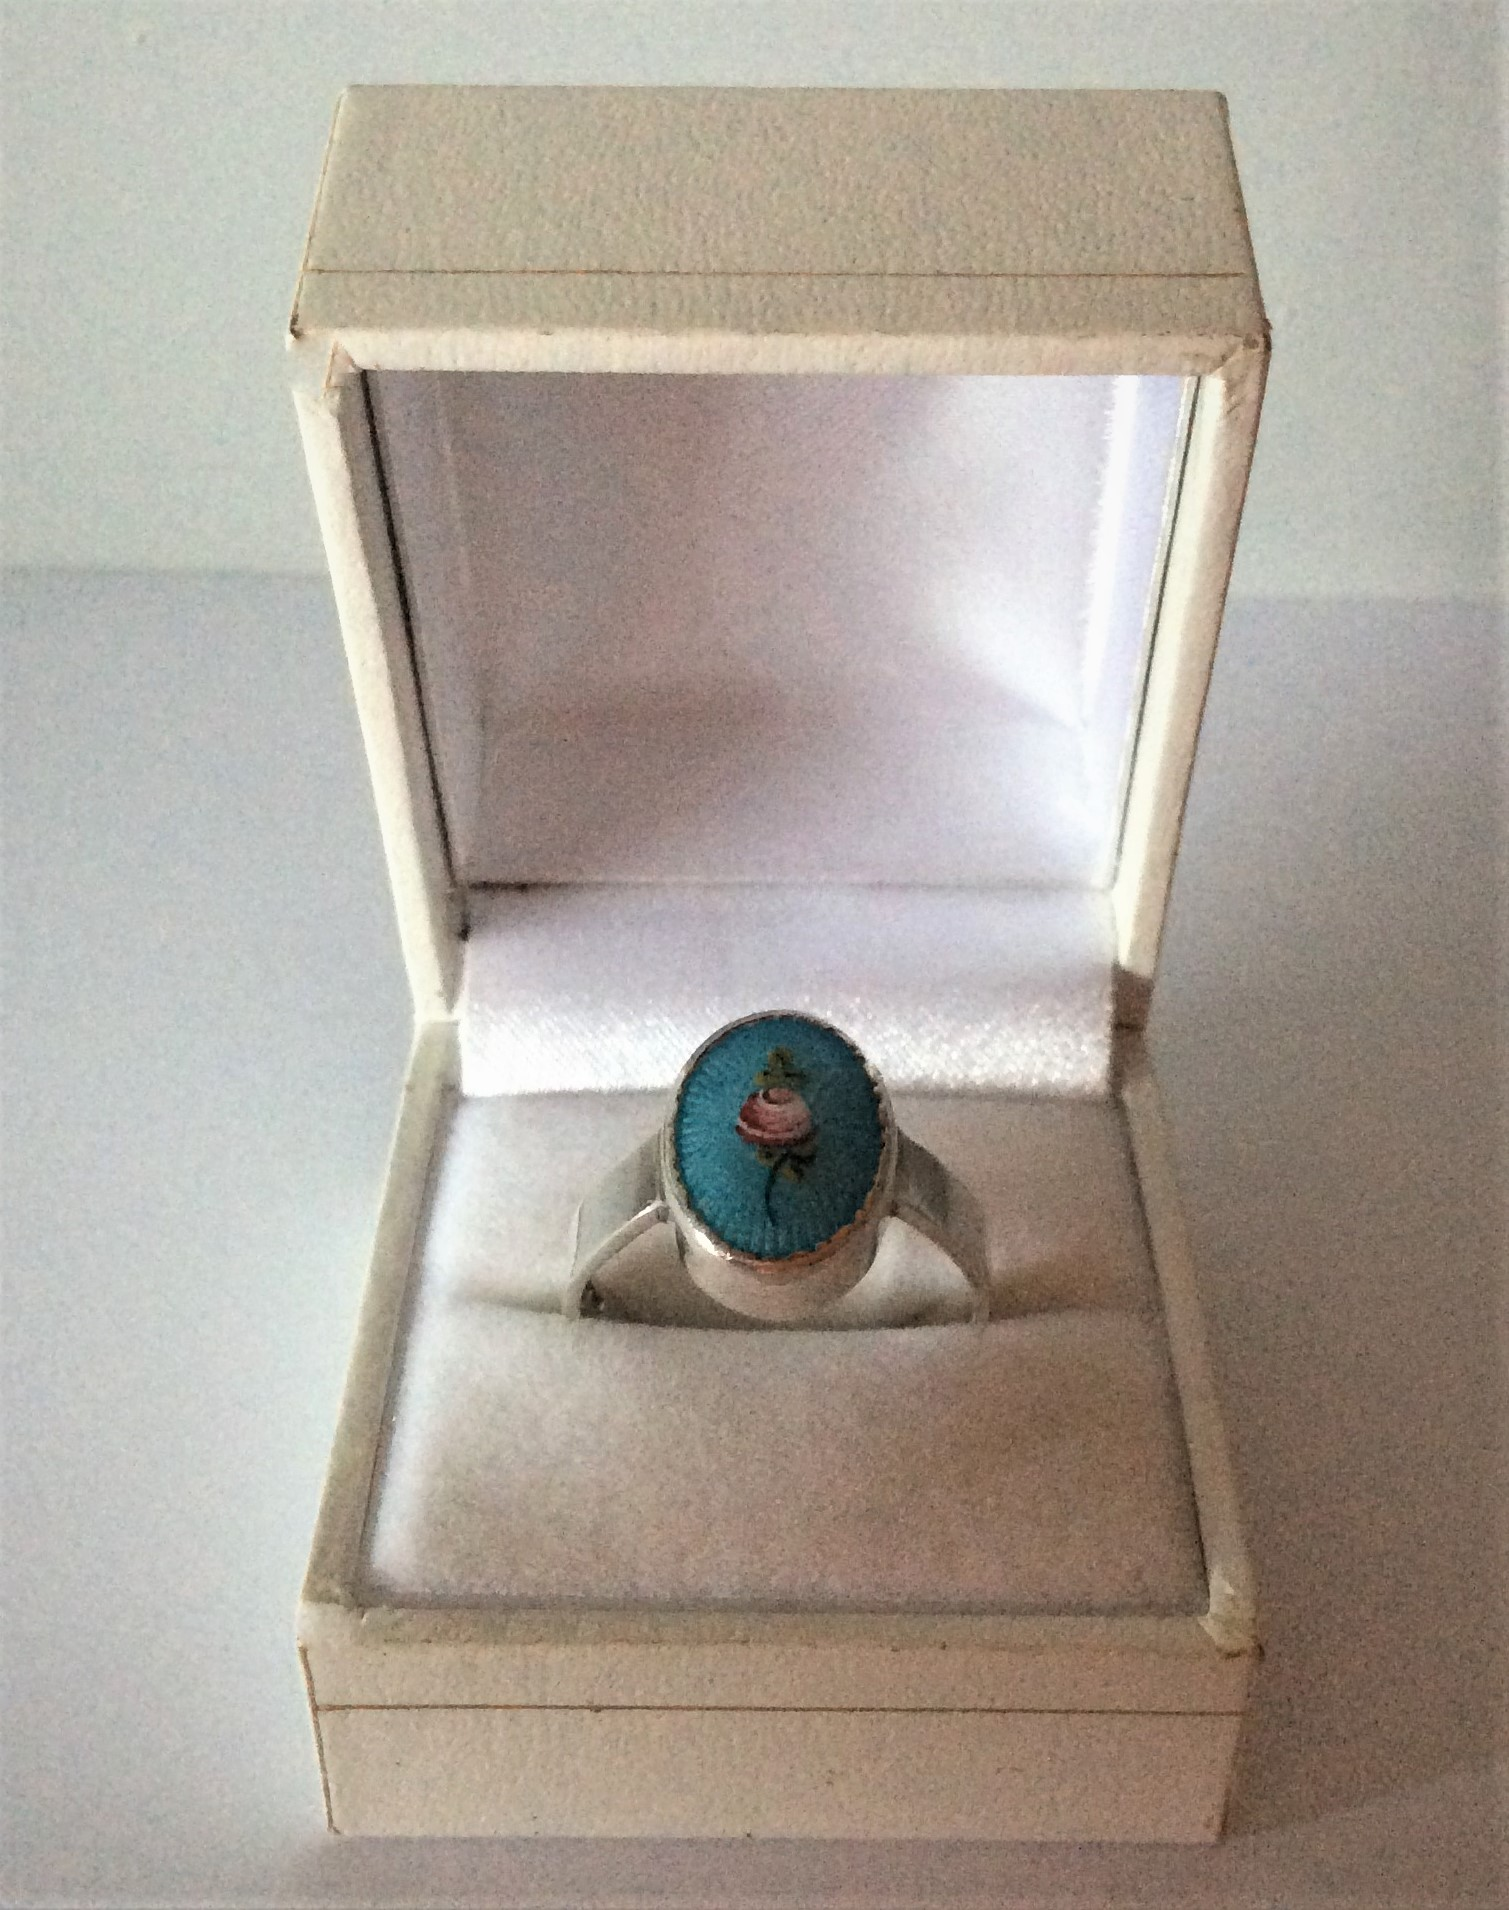 Charles Horner Mounted Sterling Silver and Turquoise with Pink Rose Design Guilloche Enamel Ring Size T (UK) Weight 6g        Condition: Very Good throughout including enamel.       Complimentary Vintage Ring Box included